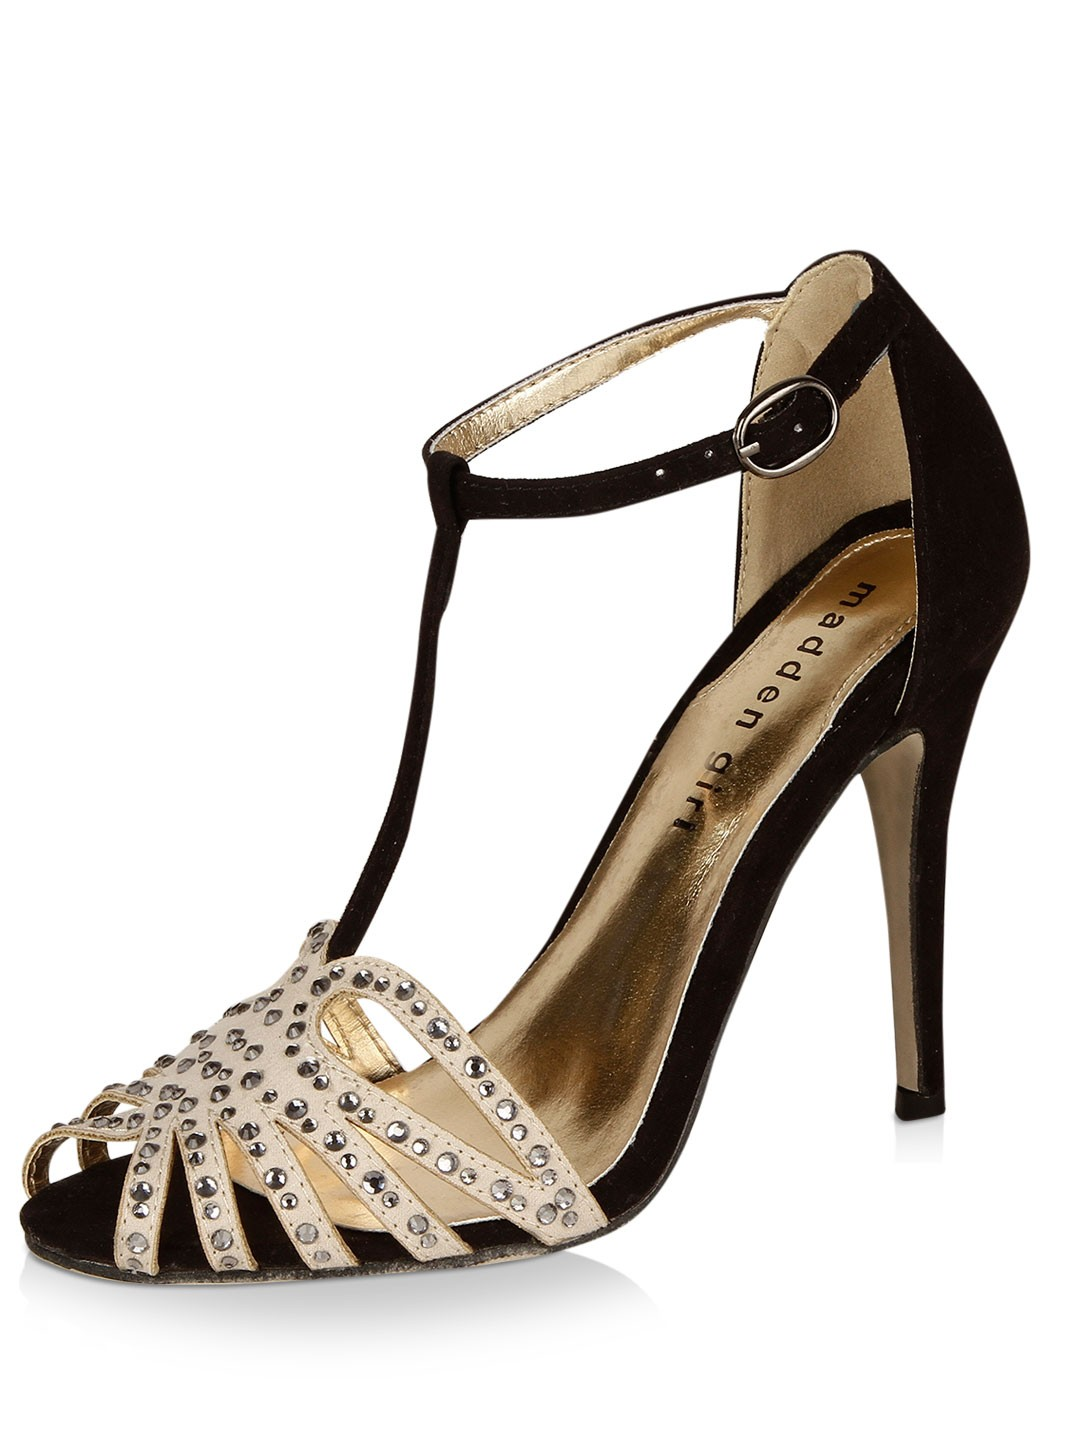 Steve Madden Shoes for Women | NordstromBrands: Maaji, Miraclesuit, Seafolly, Betsey Johnson, Jessica Simpson.